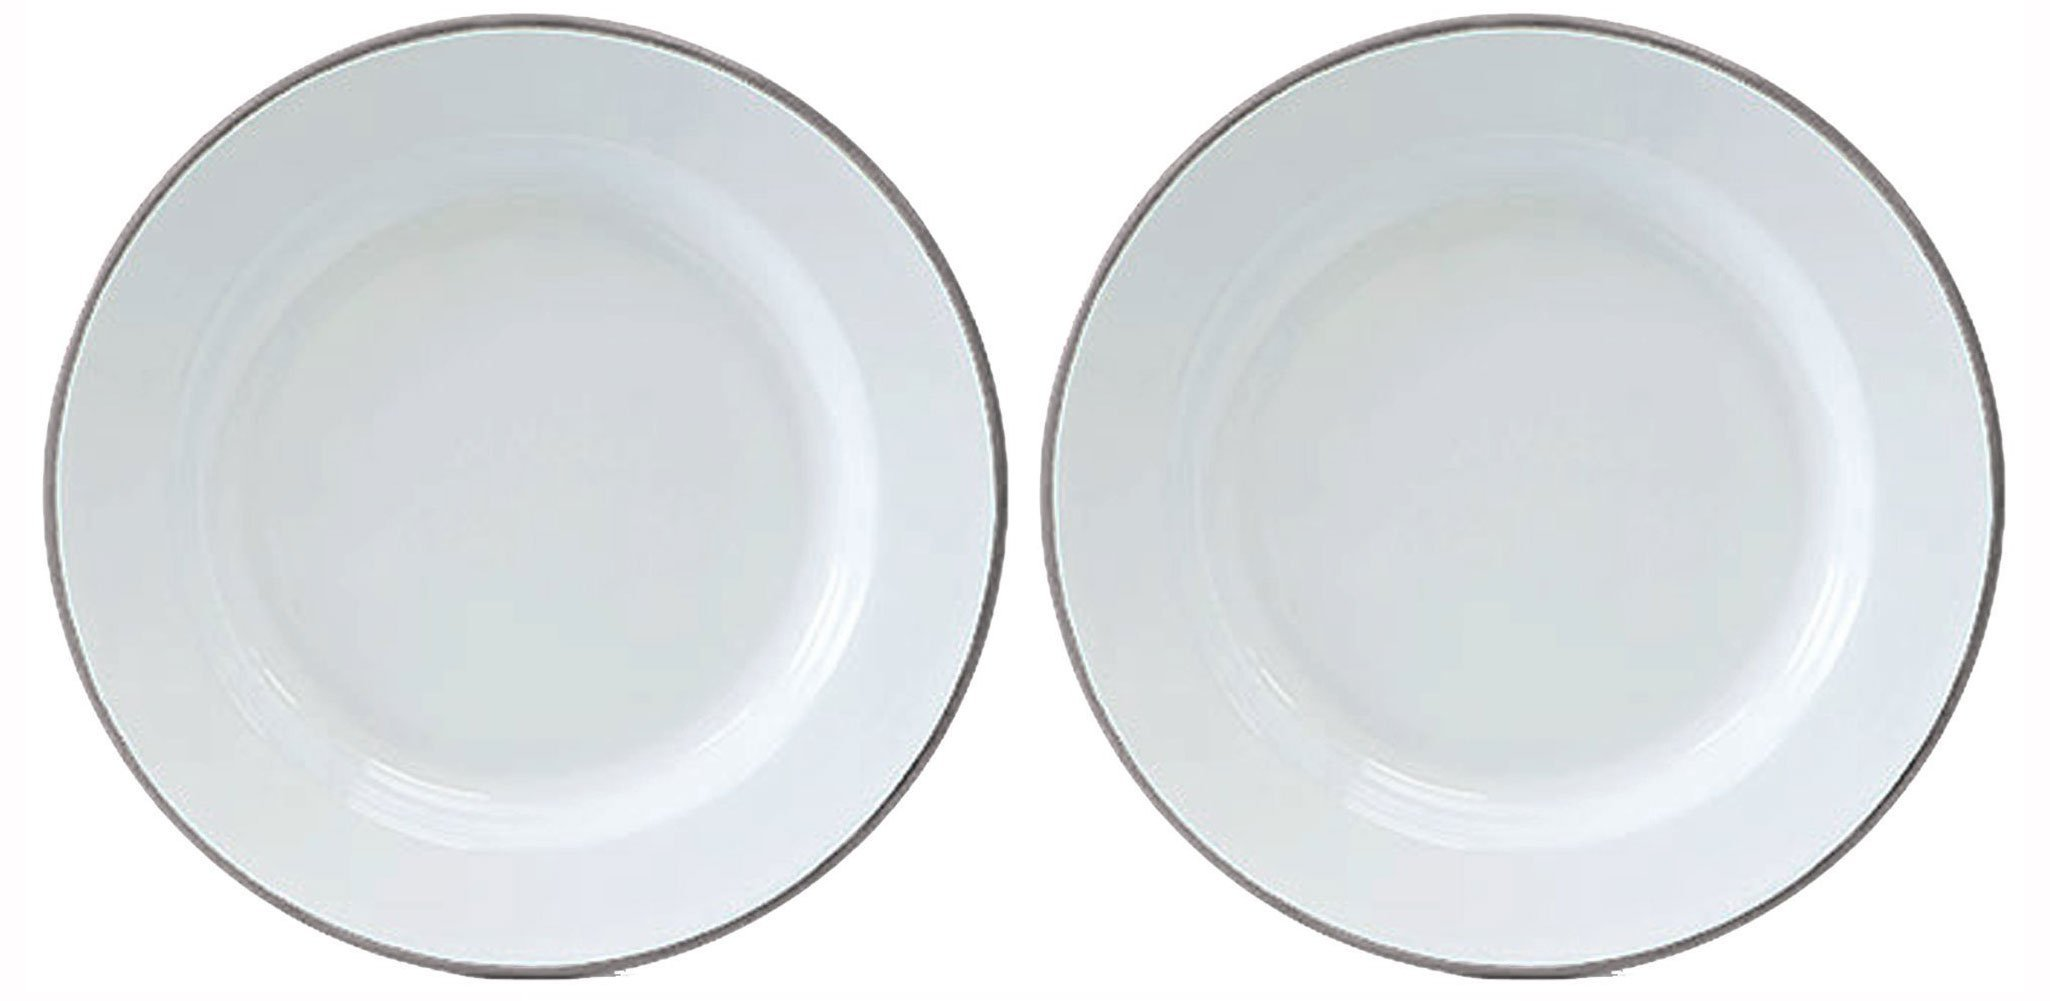 Crow Canyon Set of 2 Enamelware Dinner Plates White with Grey Rim, 10.25 Inches in Diameter By 1 Inch Tall.